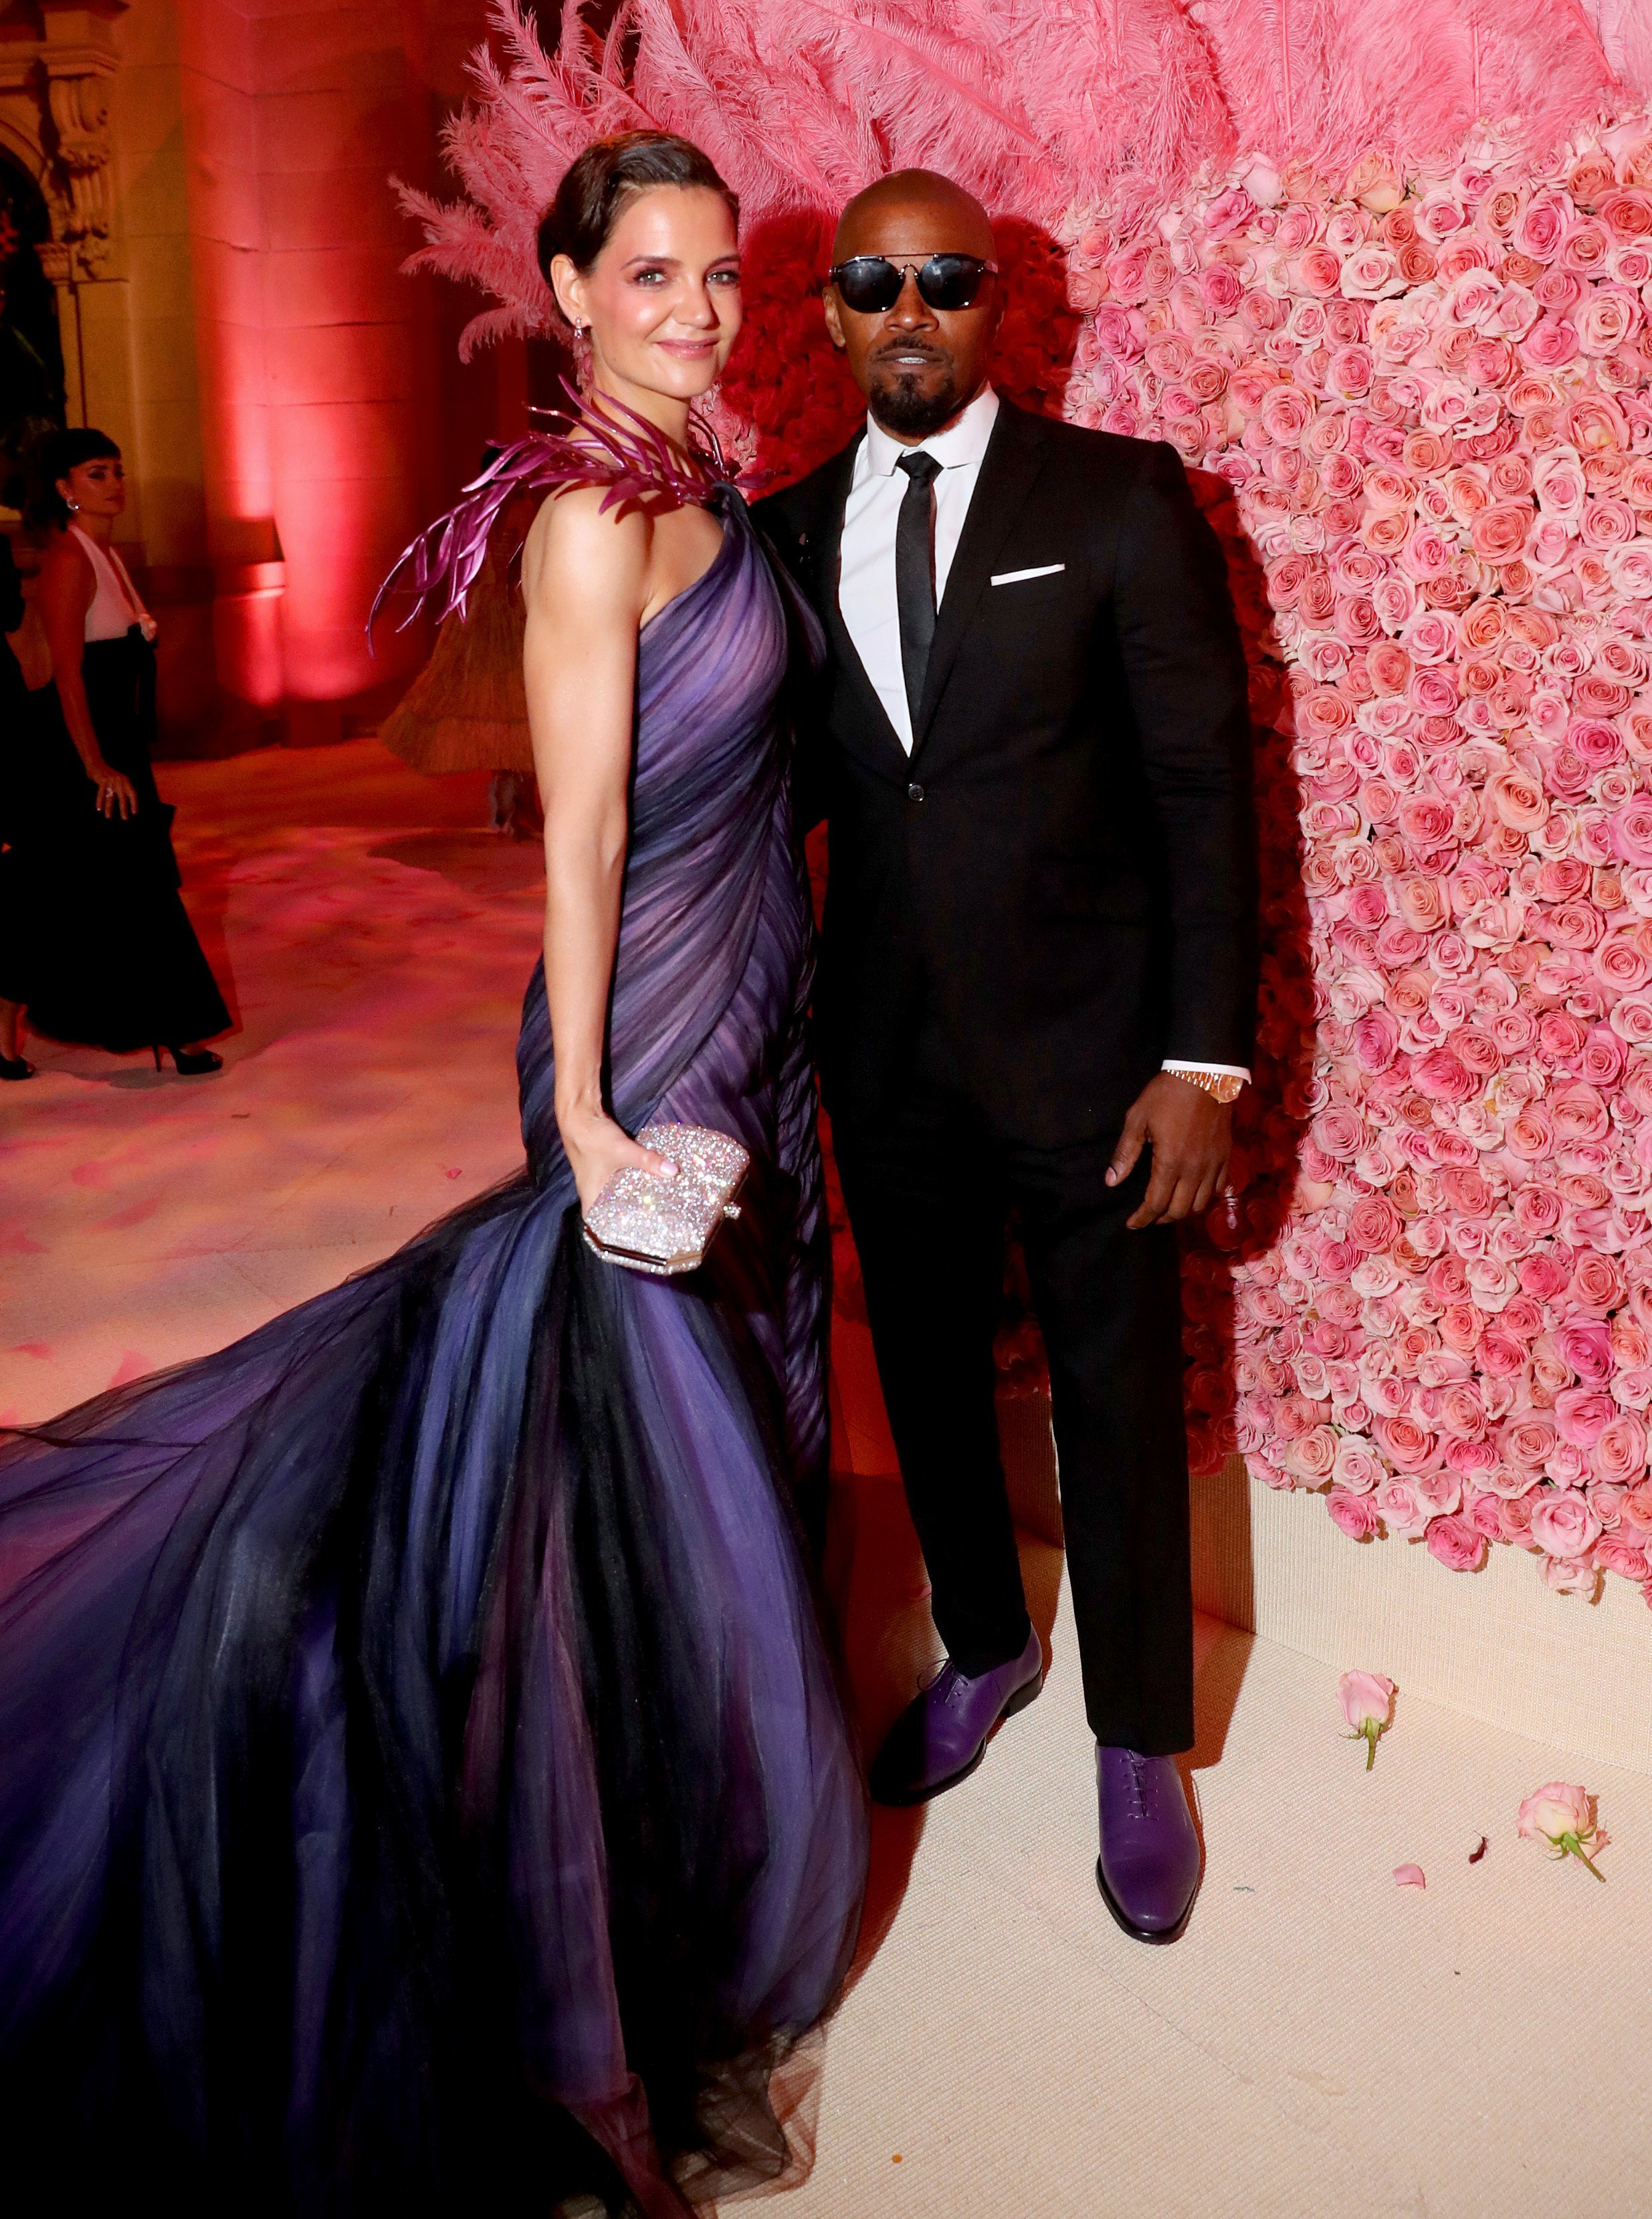 Katie Holmes & Jamie Foxx at the Met Gala on May 06, 2019 in New York City | Photo: Getty Images